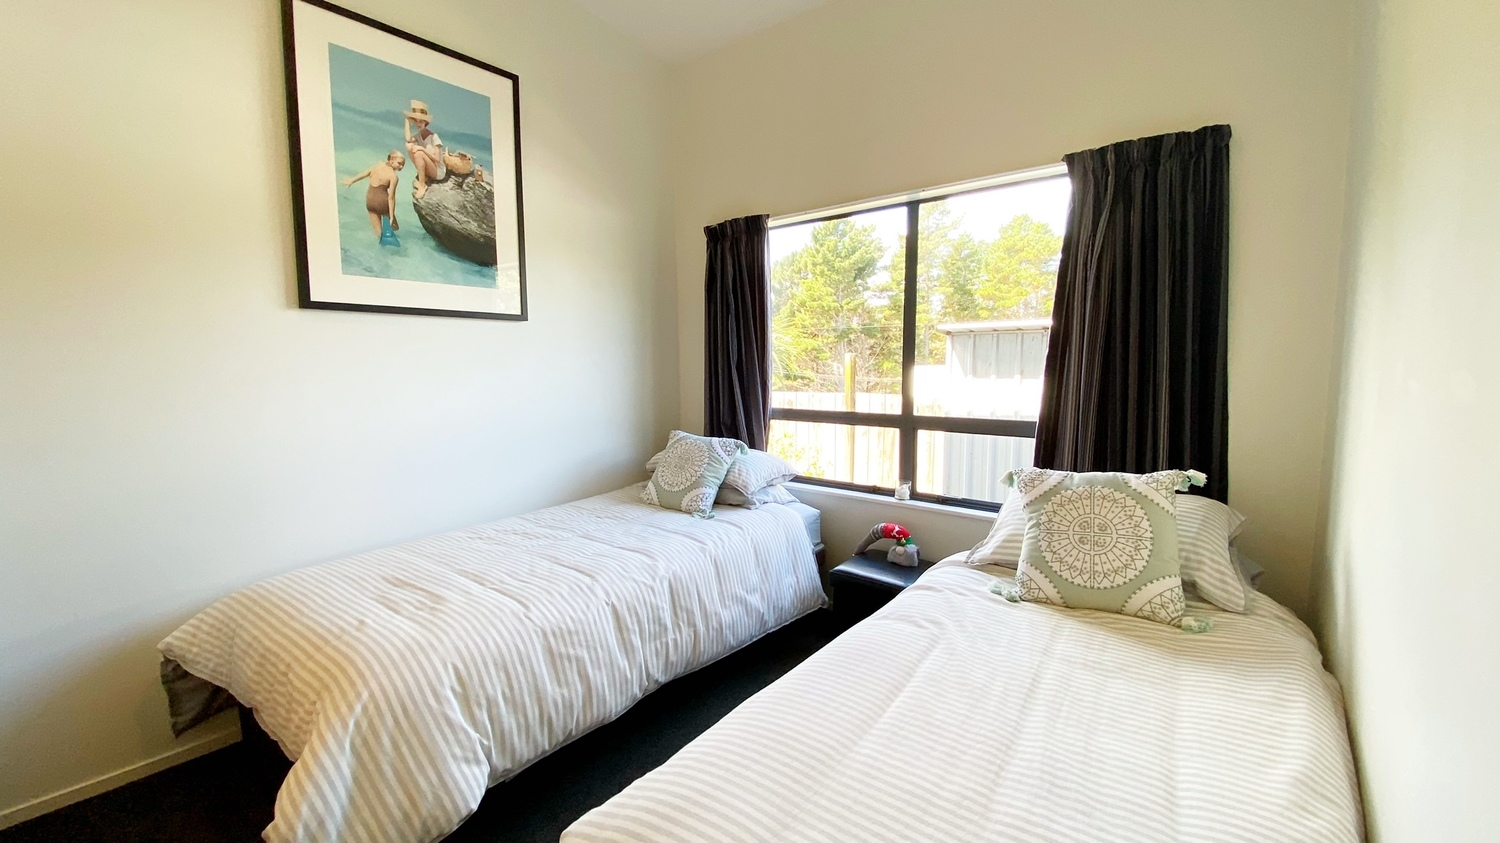 13._Woodlands_bedroom_2_with_twin_beds.msg_1500x843.jpg